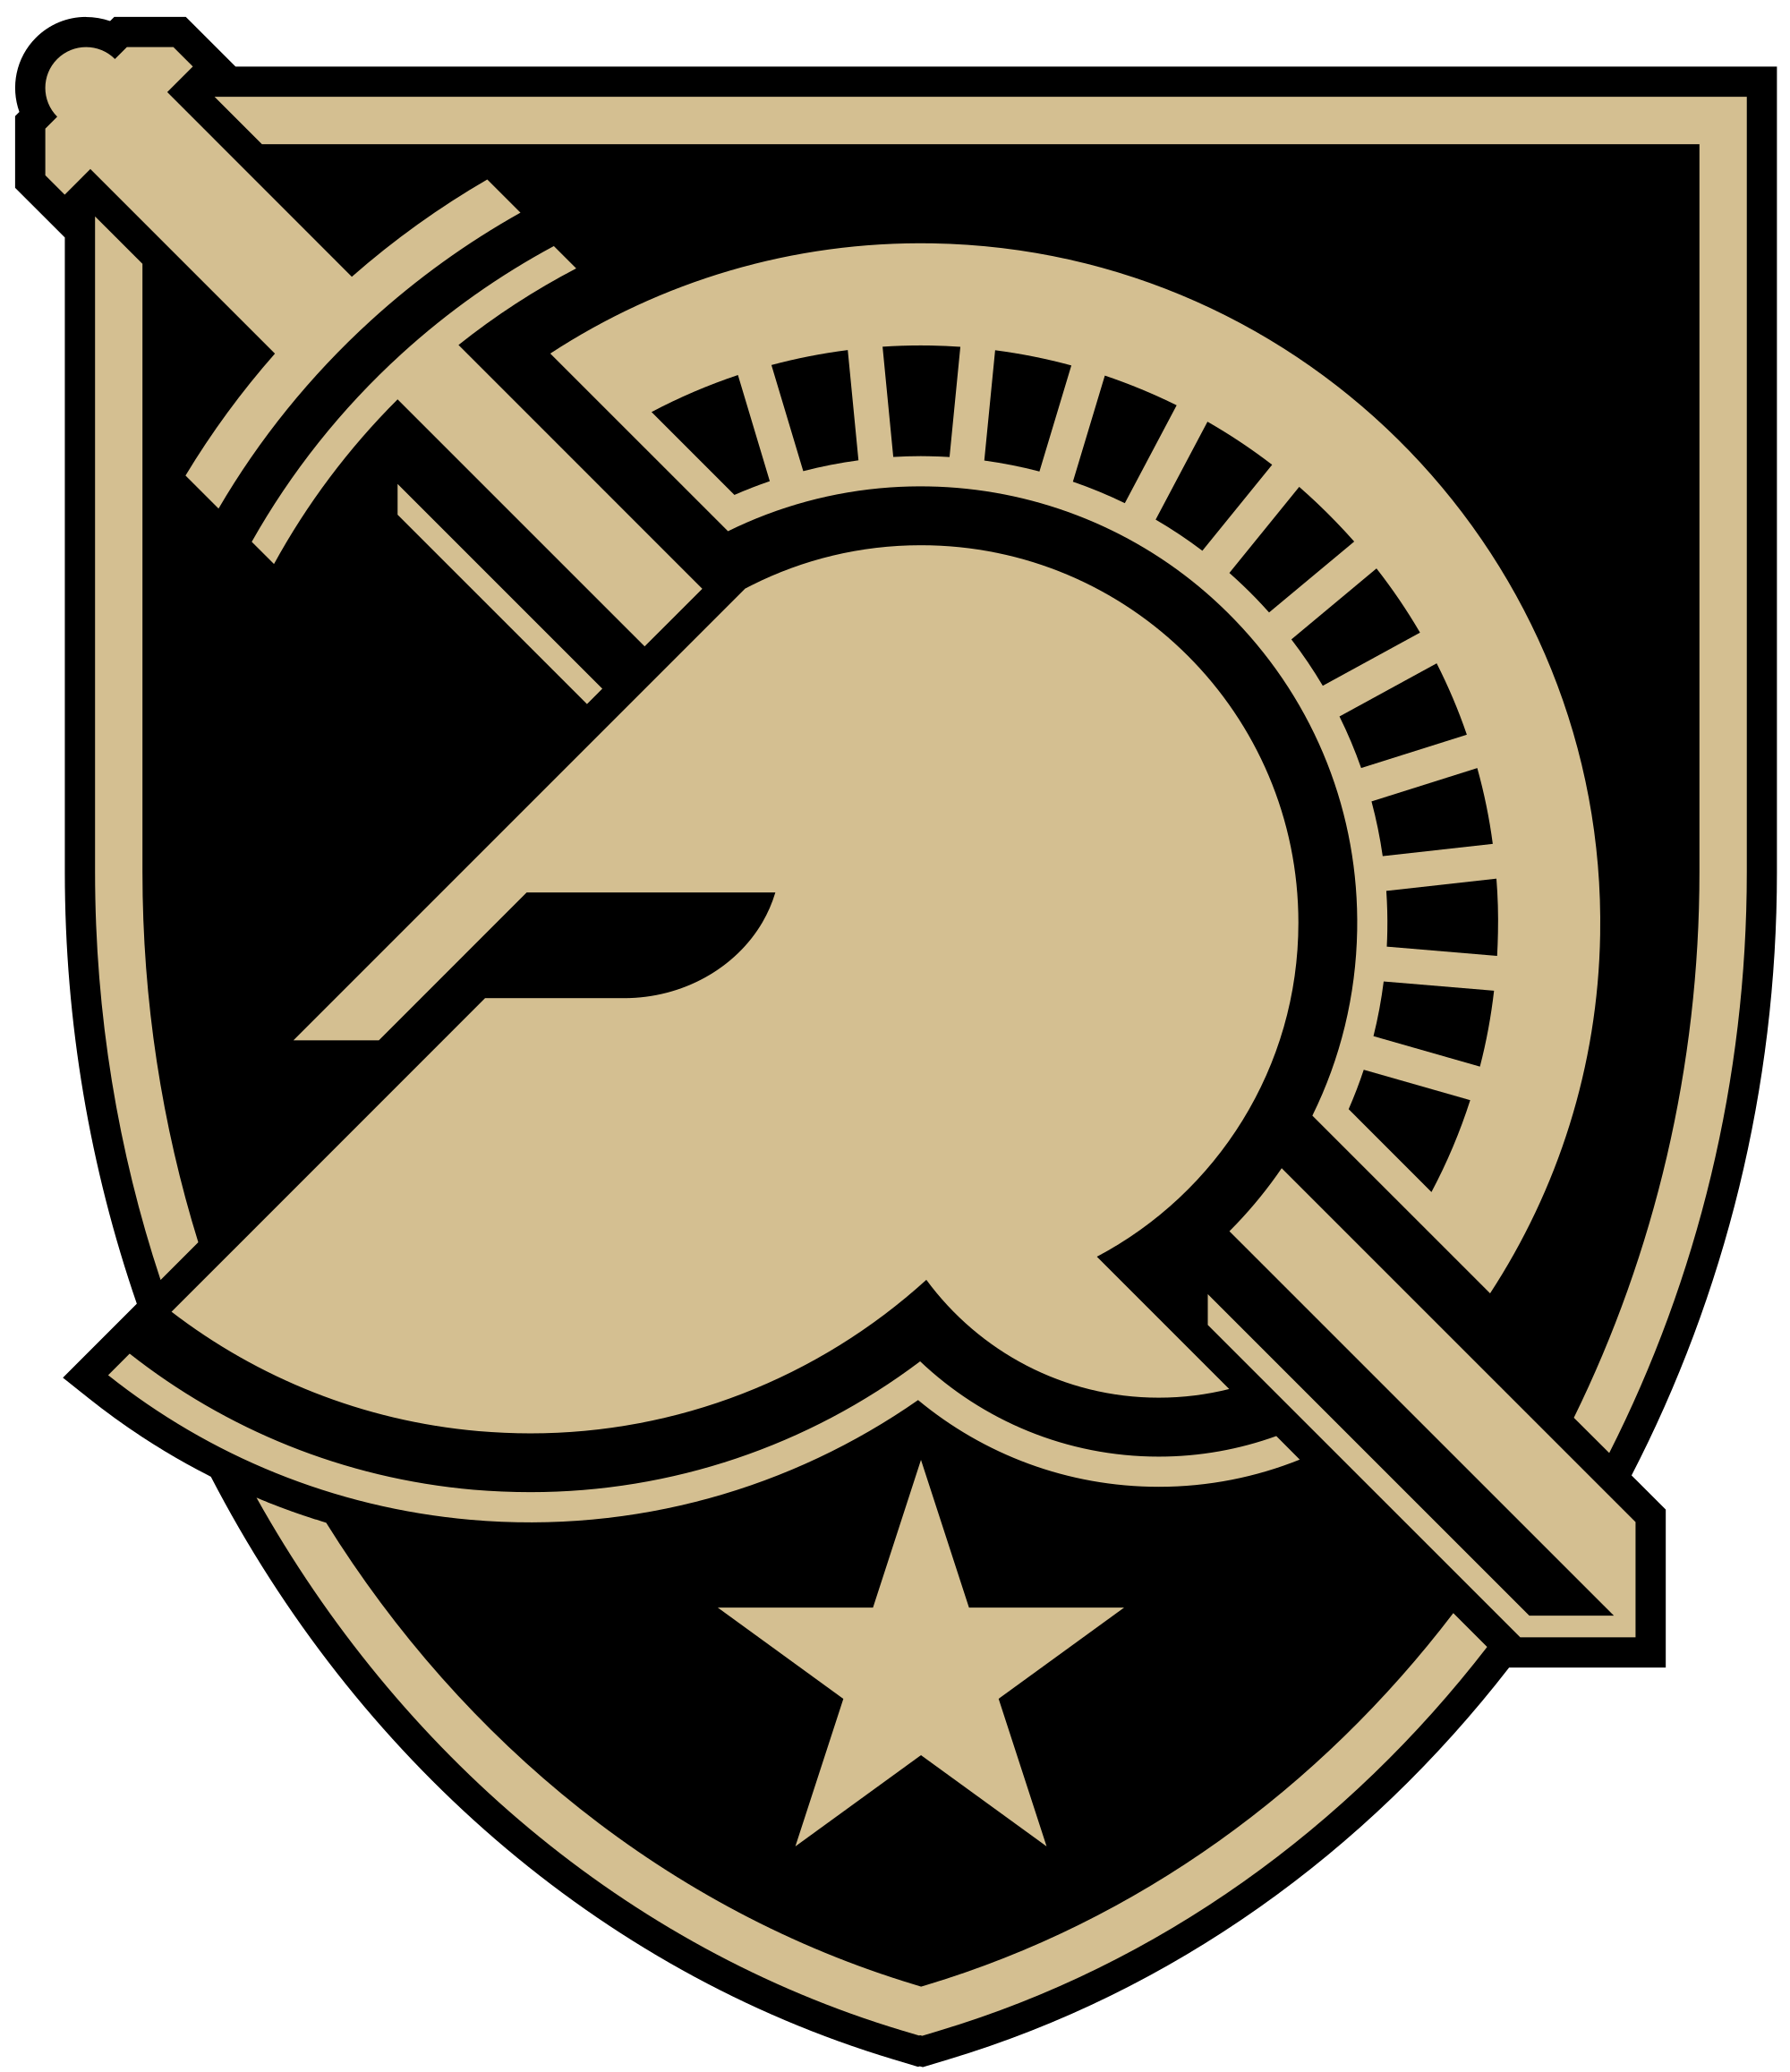 army football logo png